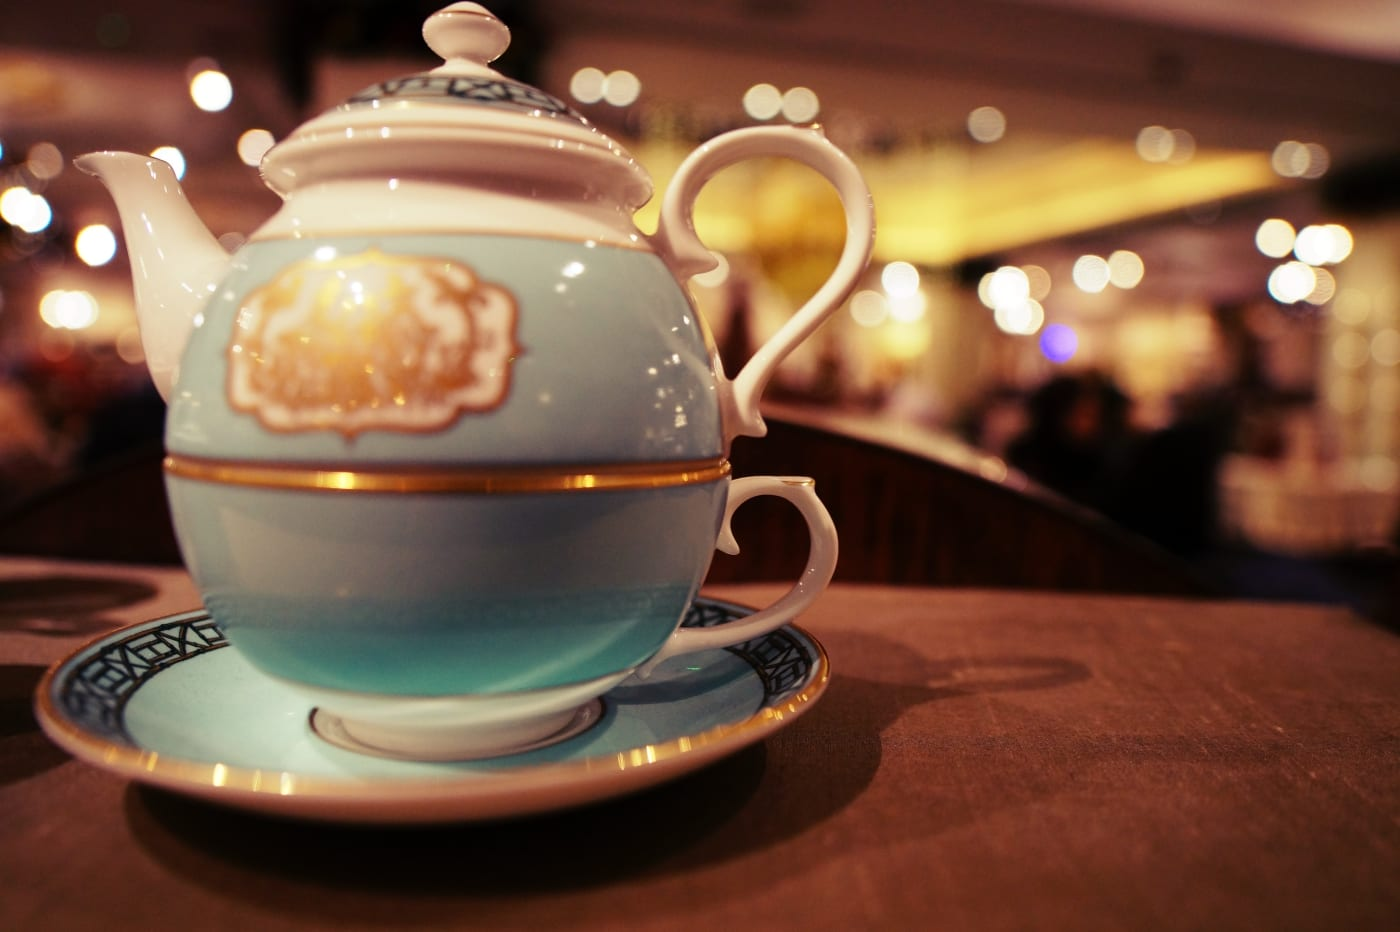 fortnum-mason-london-teekanne